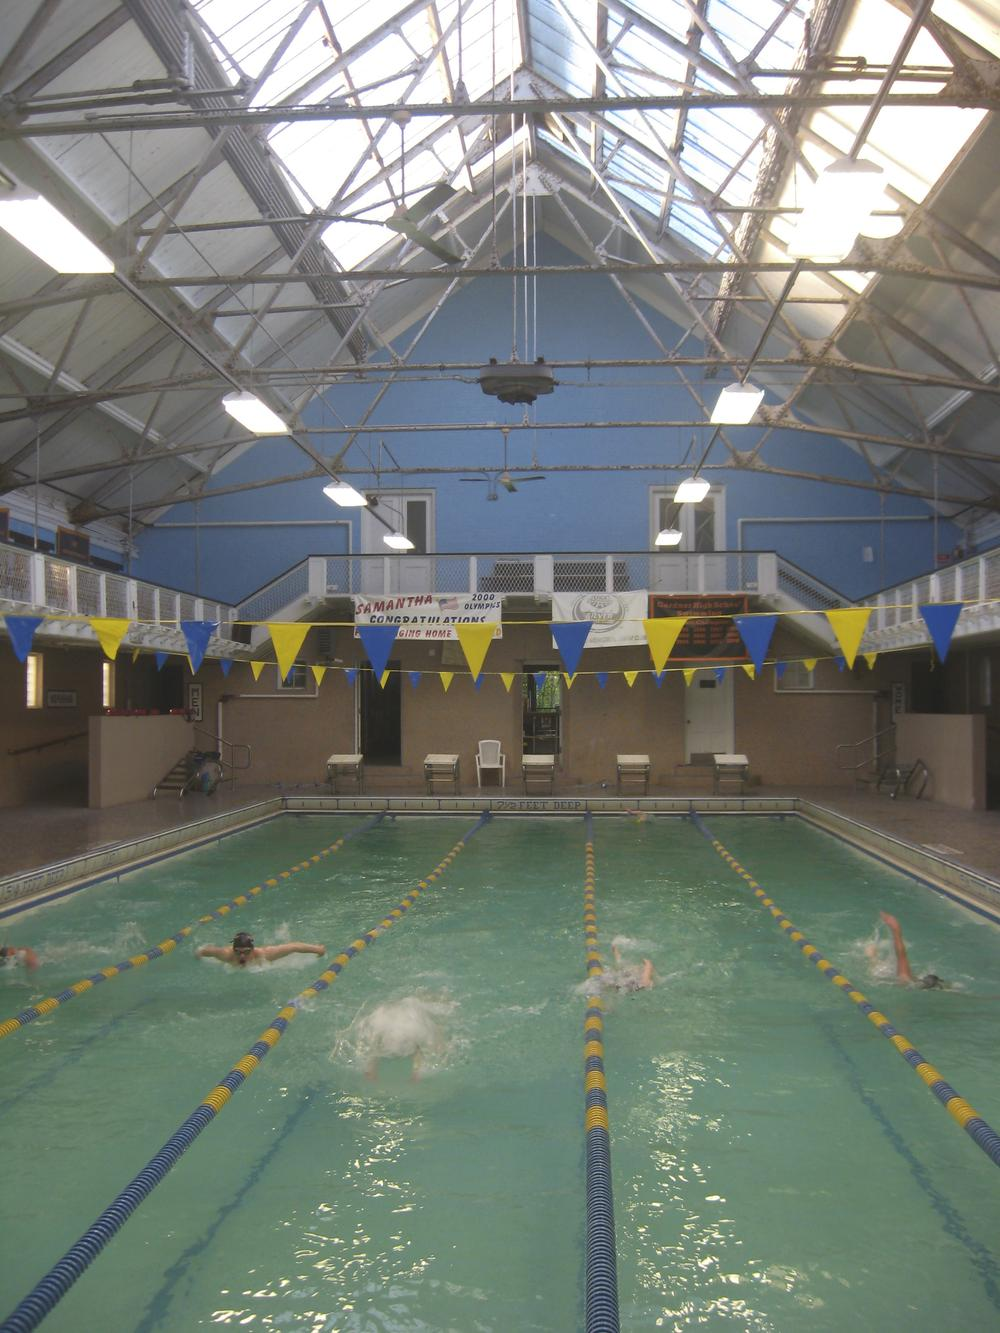 The Greenwood Memorial Swim Club is badly in need of repairs, but Gardner is unable to afford them. (David Boeri/WBUR)